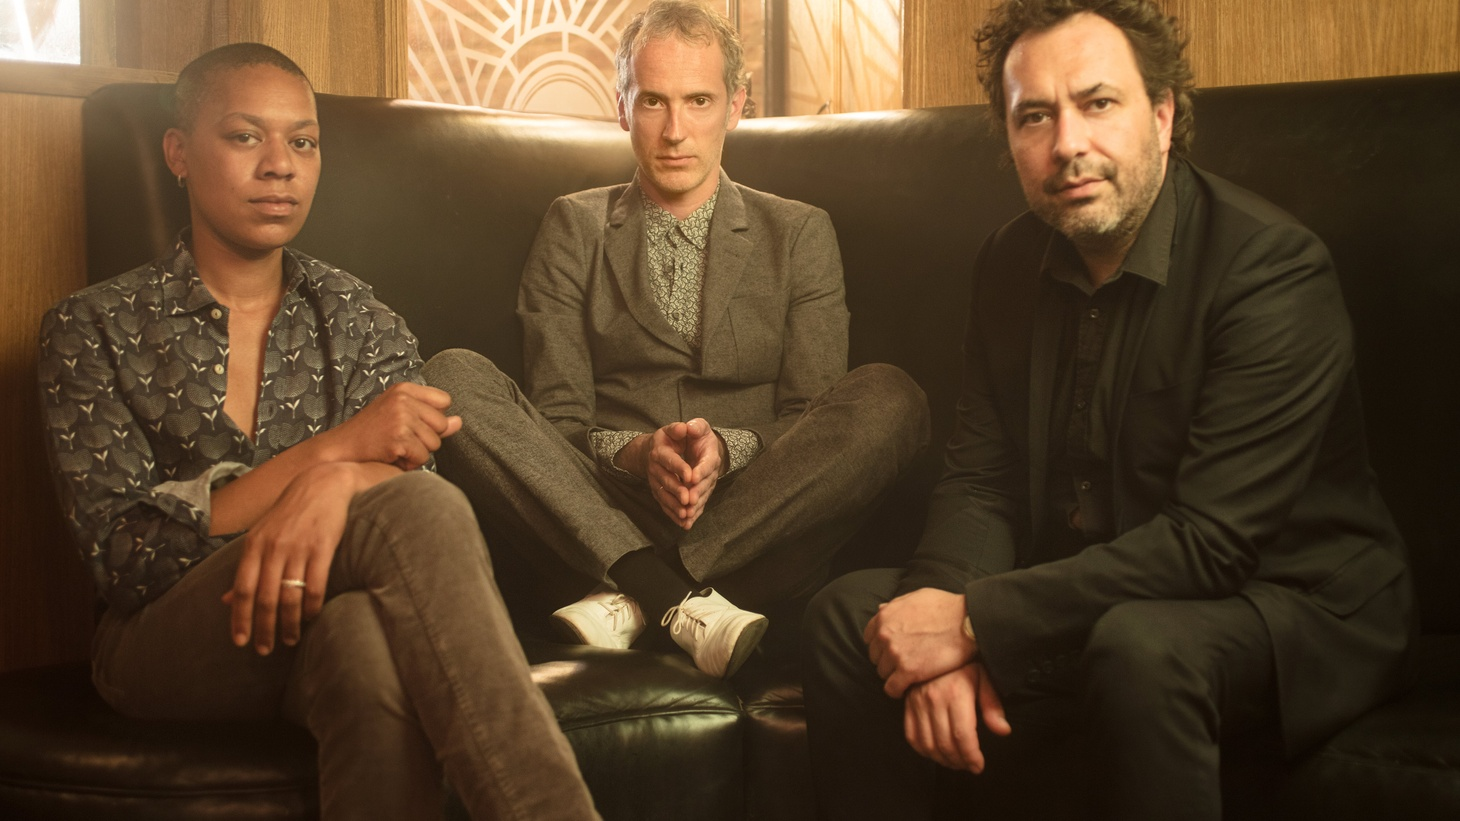 The Franco-American trio made up of Nouvelle Vague collaborator Julien Decoret, drummer Raphael Chassin and vocalist extraordinaire Krystal Warren comes together as Joon Moon.